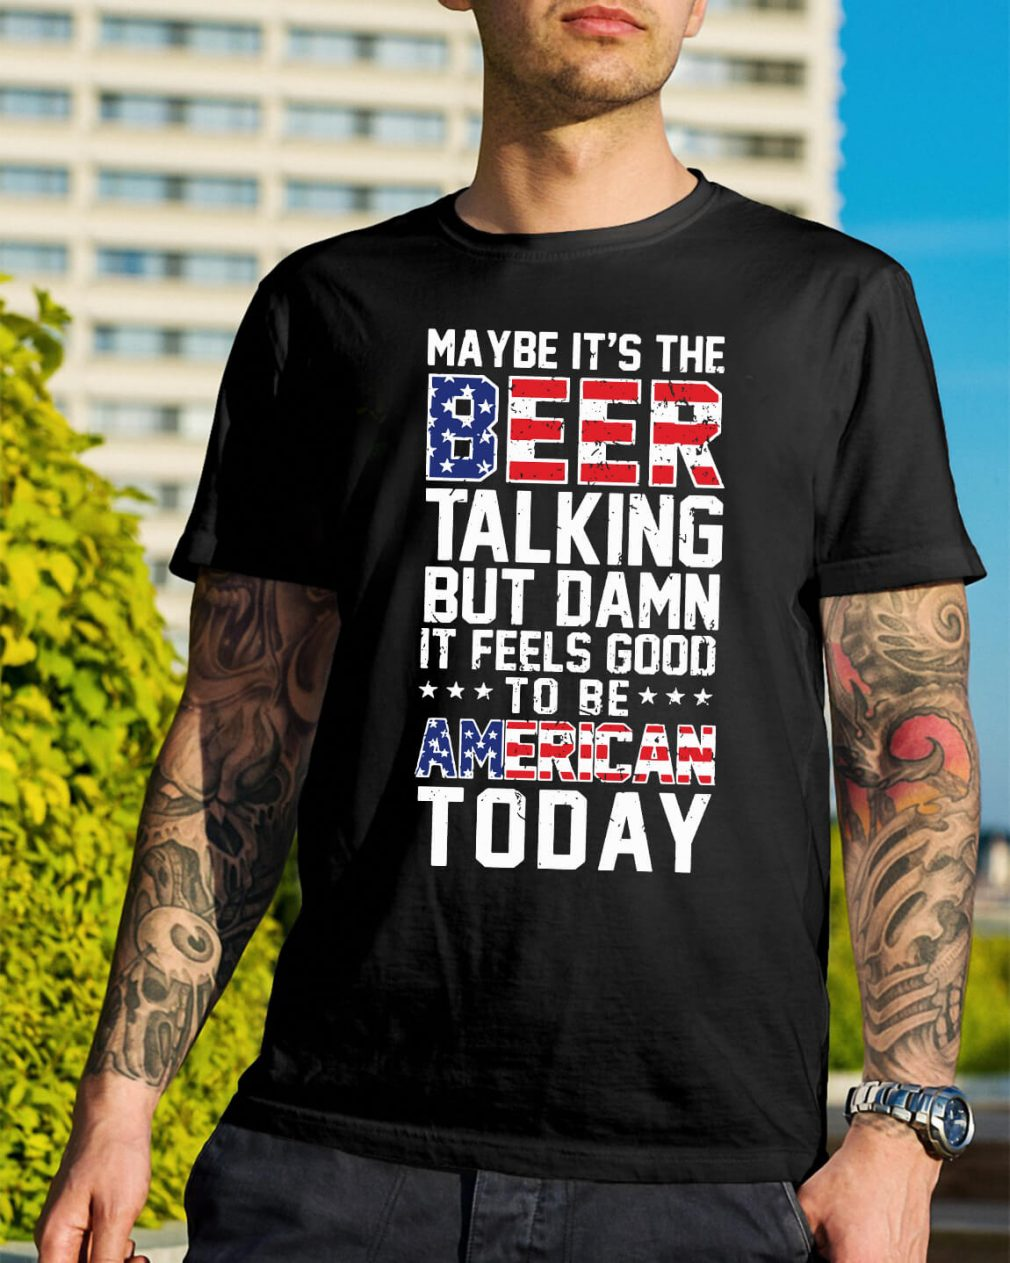 Maybe it's the beer talking but damn it feels good to be American shirt